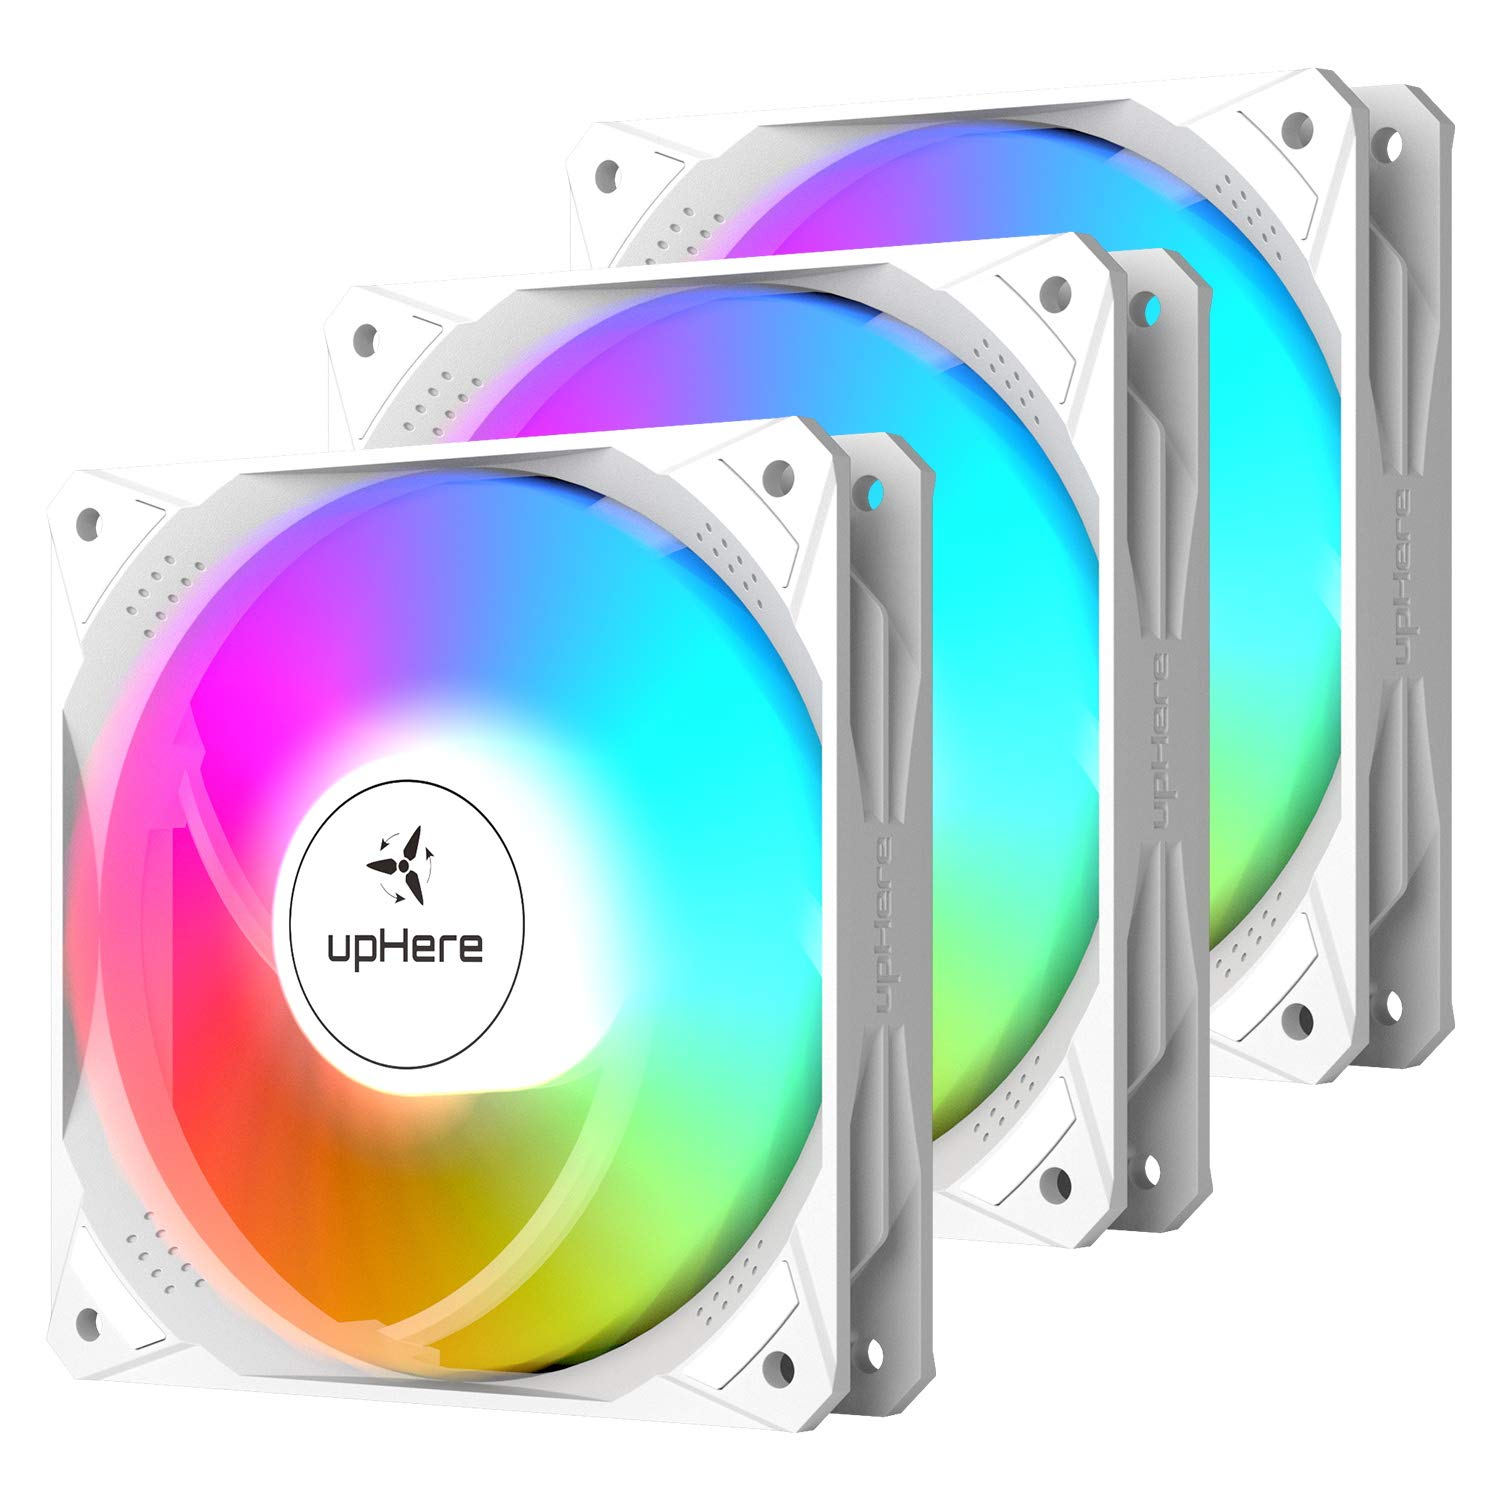 upHere 120mm White Case Fan High Airflow Rainbow LED for Computer Cases Cooling,3-Pack,NT12CF3